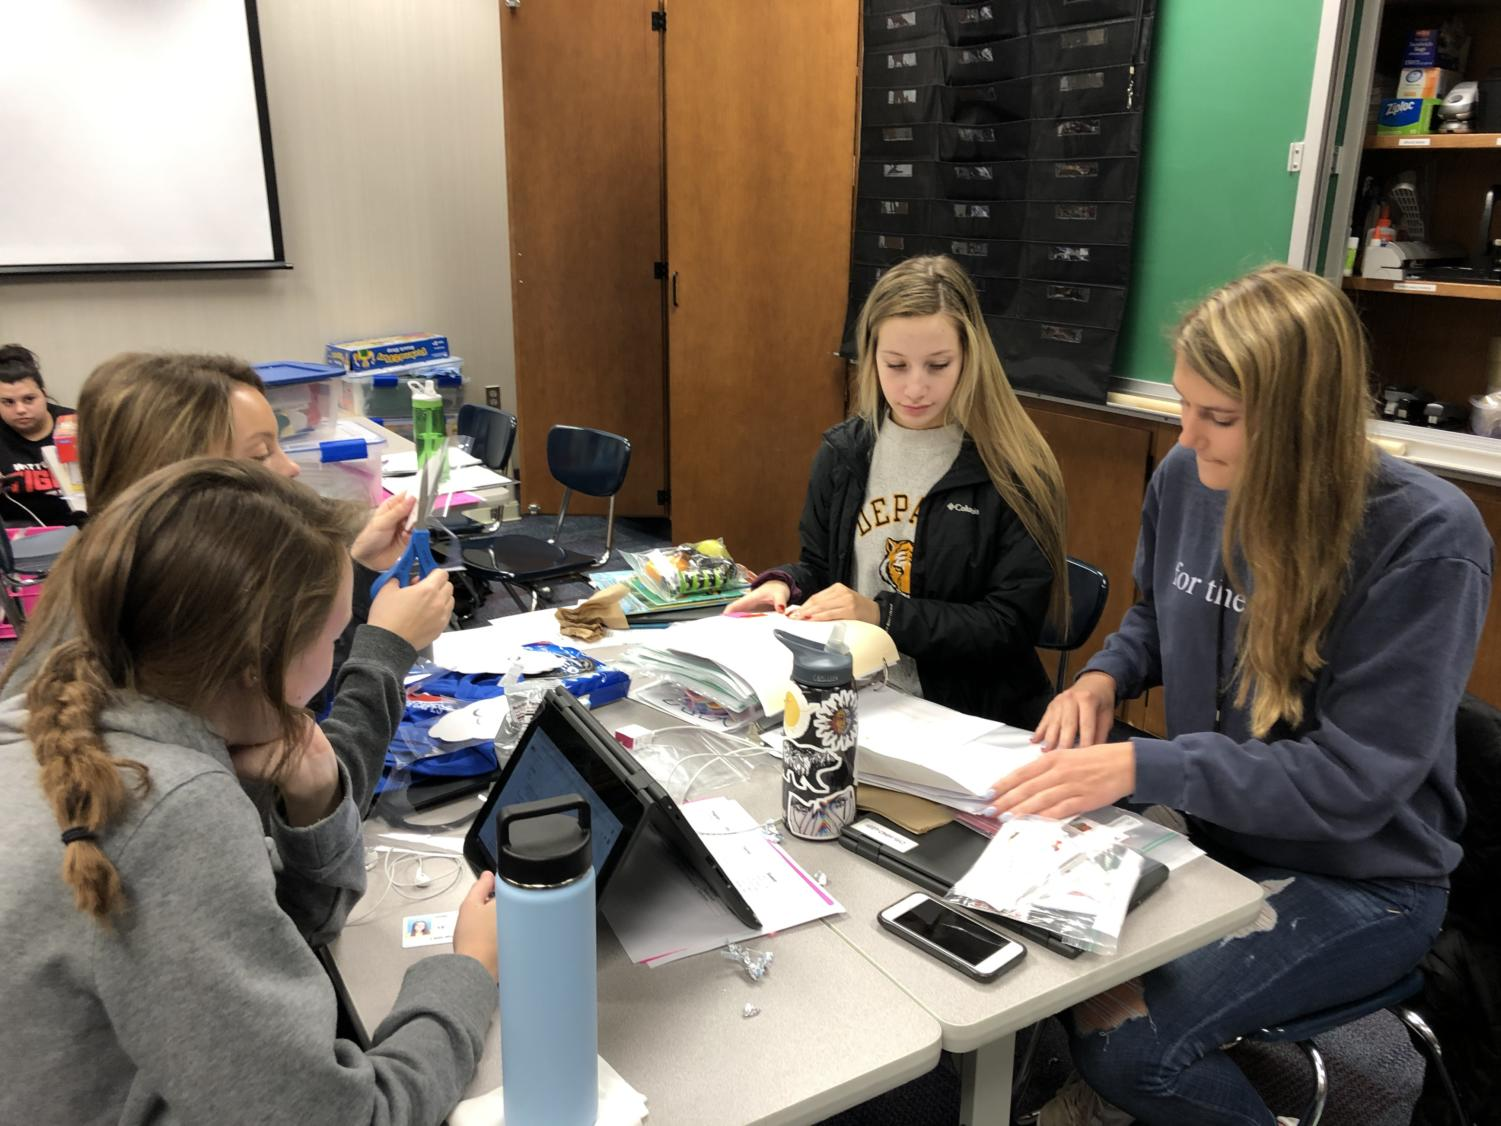 (Right to Left) Juniors Maddison Grave, Ellie Esrael, Aeryn Hopwood, and Livvie Miller work on teaching props to accompany their lesson plans during a G4 Kid's Corner class on Feb. 22, 2019.